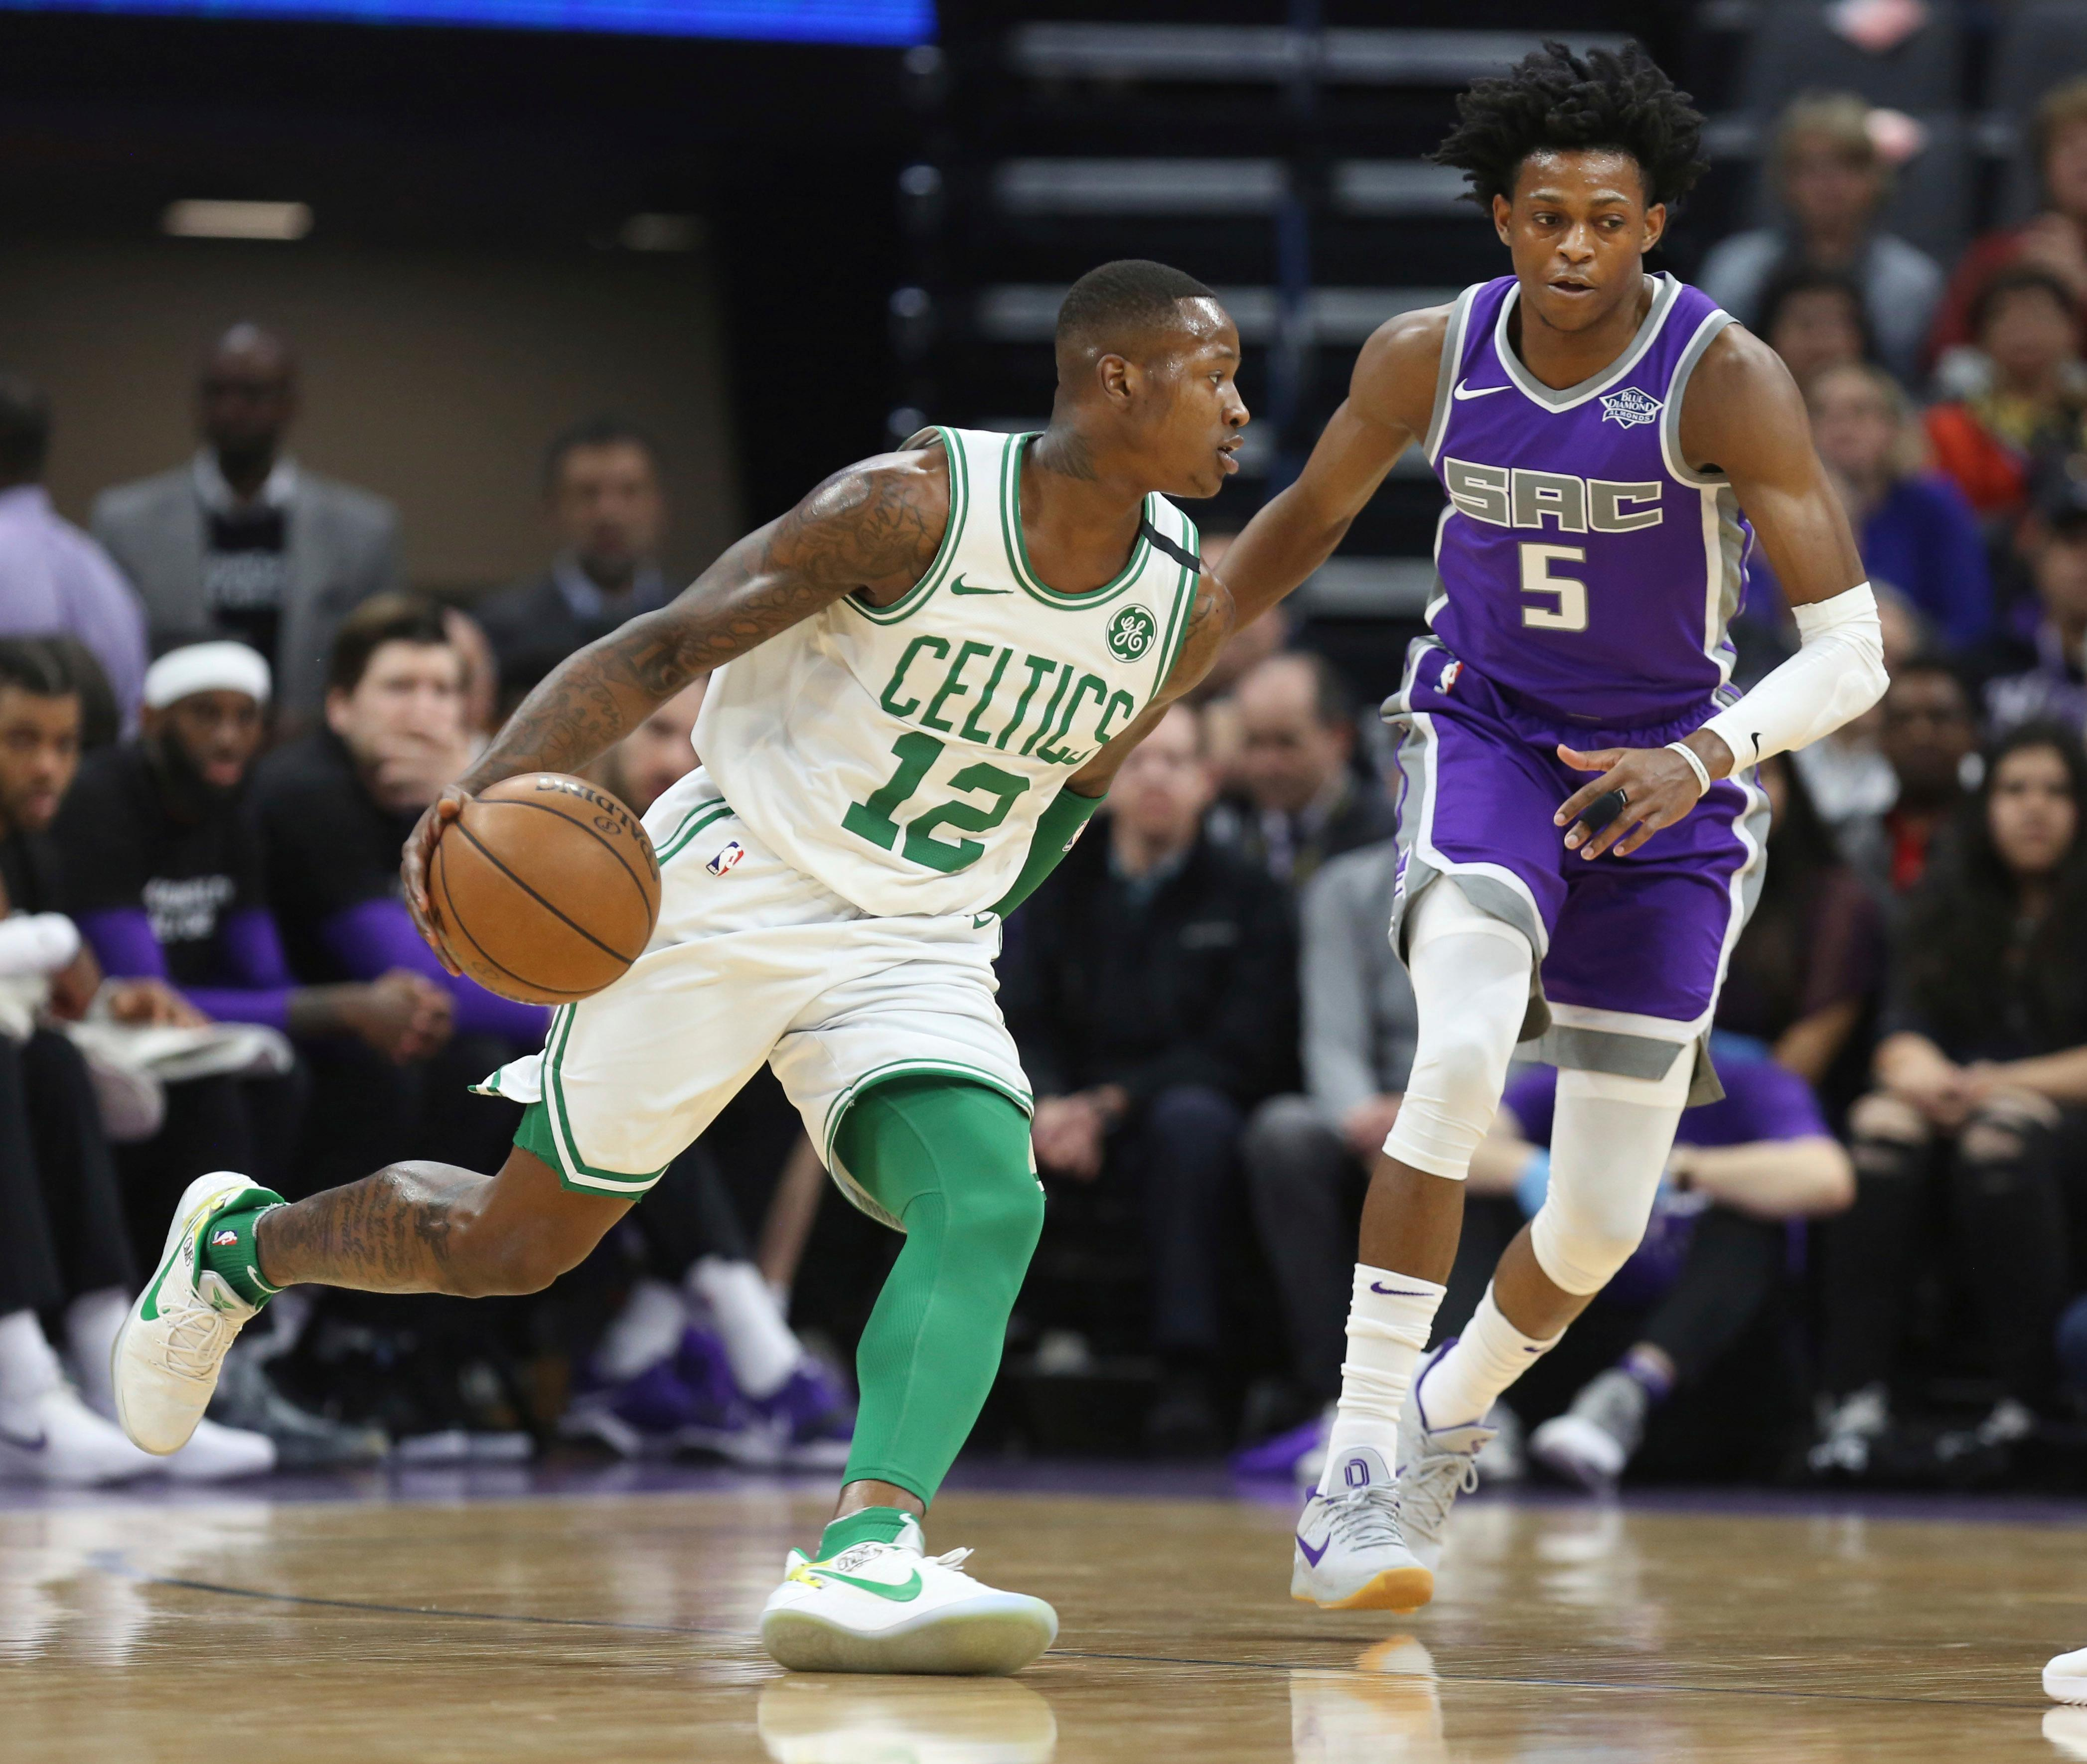 Boston Celtics guard Terry Rozier (12) drives around Sacramento Kings guard De'Aaron Fox (5) during the first half of an NBA basketball game in Sacramento, Calif., Sunday, March 25, 2018. (AP Photo/Steve Yeater)